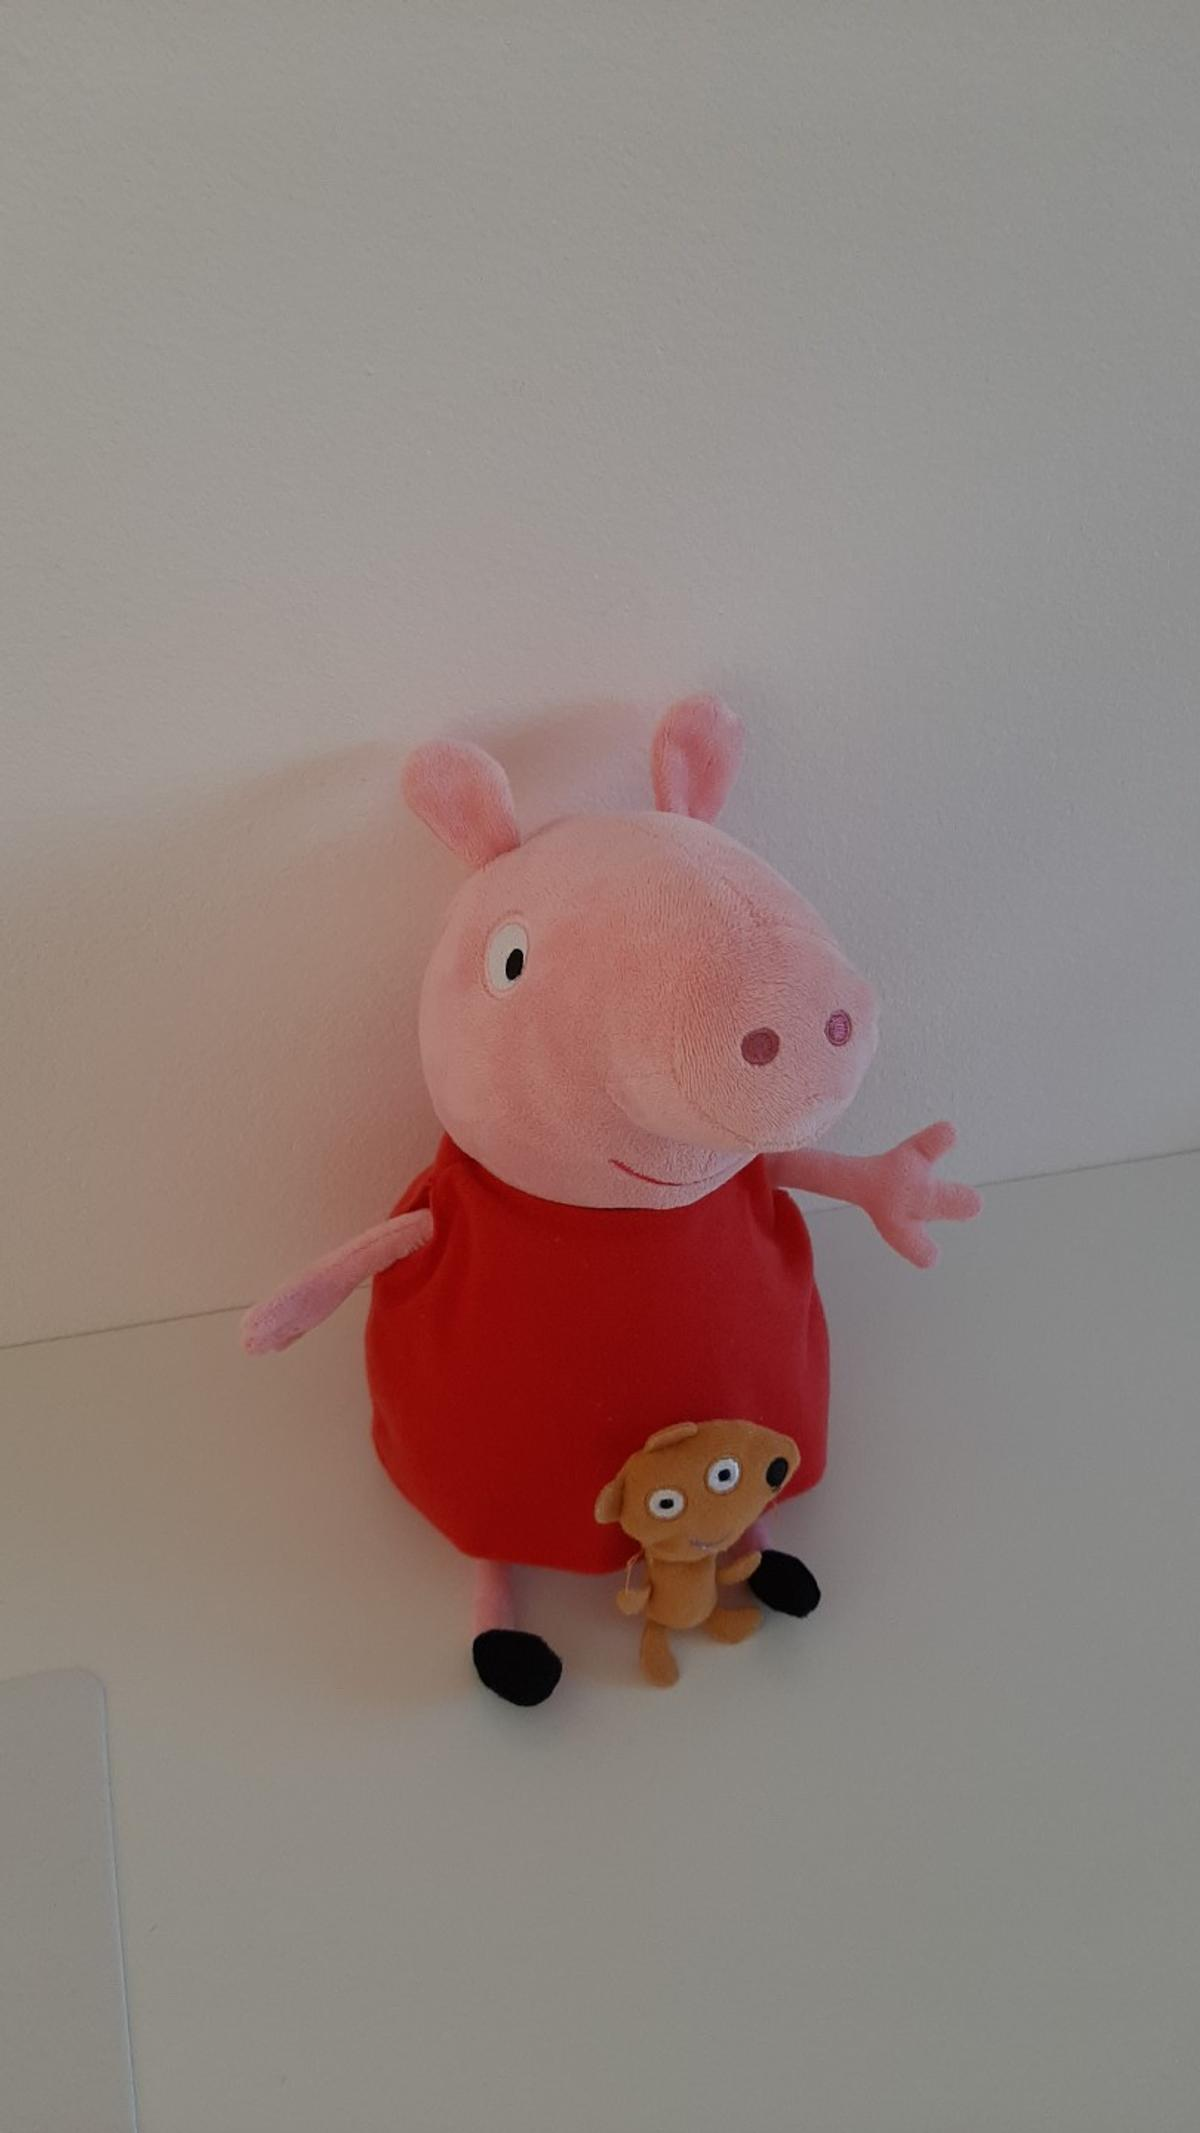 peppa pig fun aplasta topos. Peluche Peppa Pig In 20089 Assago For 8 00 For Sale Shpock